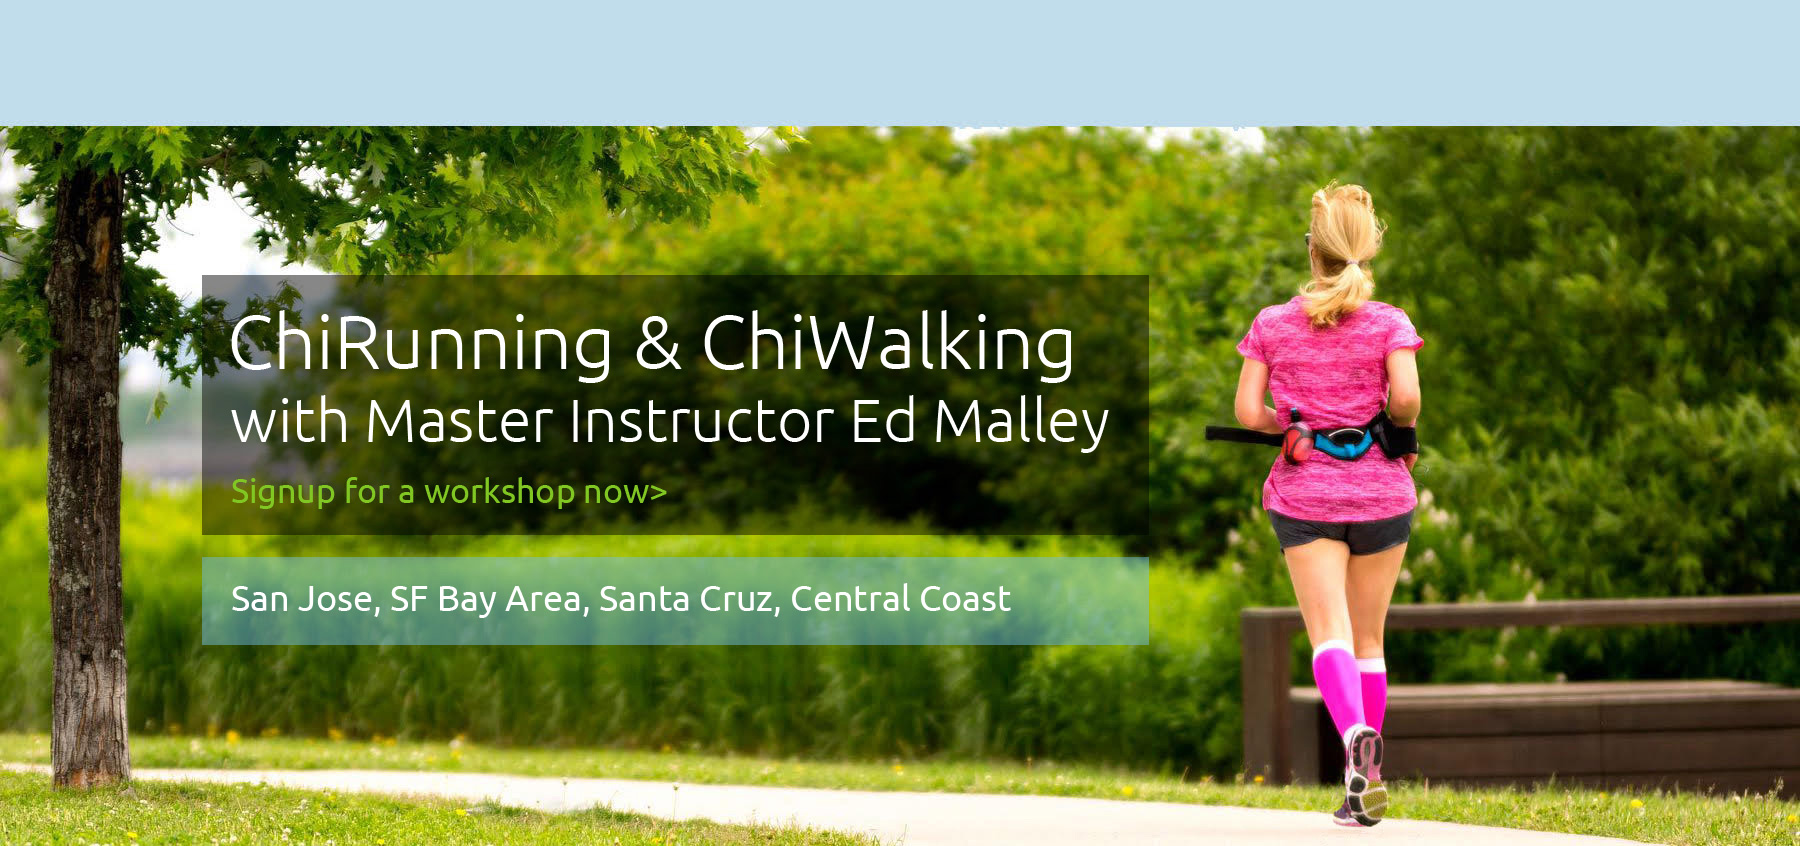 ChiRunning & ChiWalking with Master Instructor Ed Malley